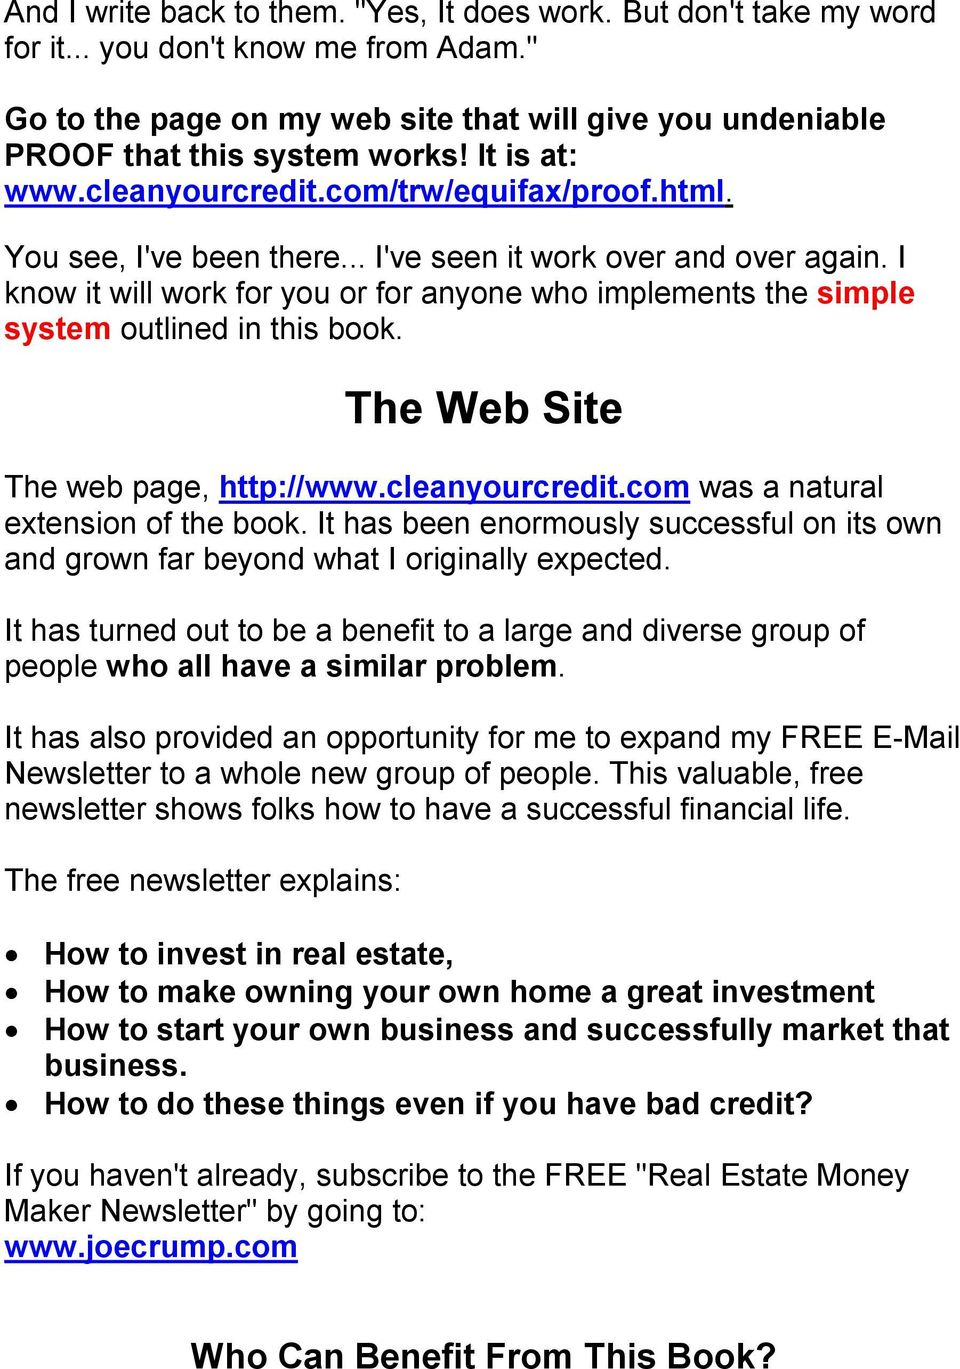 I know it will work for you or for anyone who implements the simple system outlined in this book. The Web Site The web page, http://www.cleanyourcredit.com was a natural extension of the book.